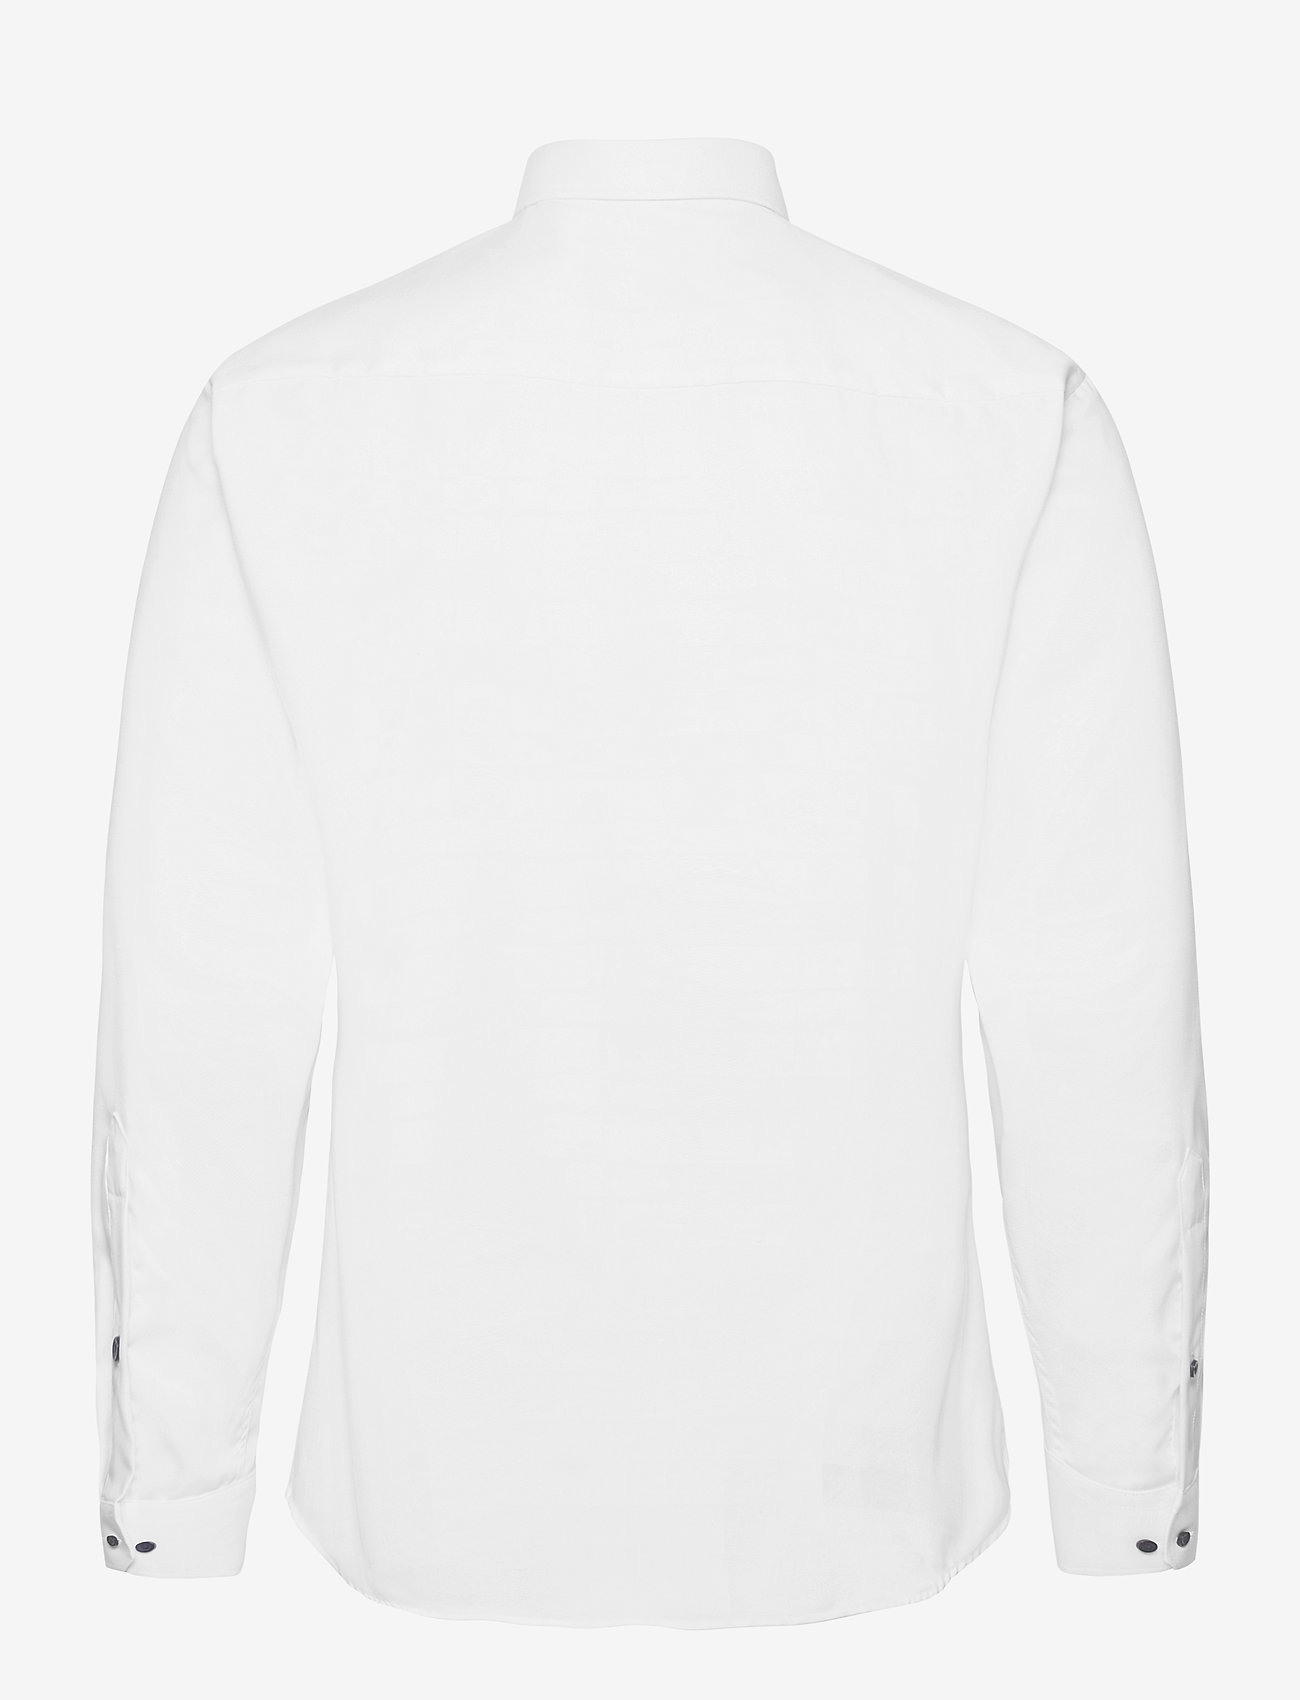 Bosweel Shirts Est. 1937 - White Structure with contrast - chemises d'affaires - white - 1